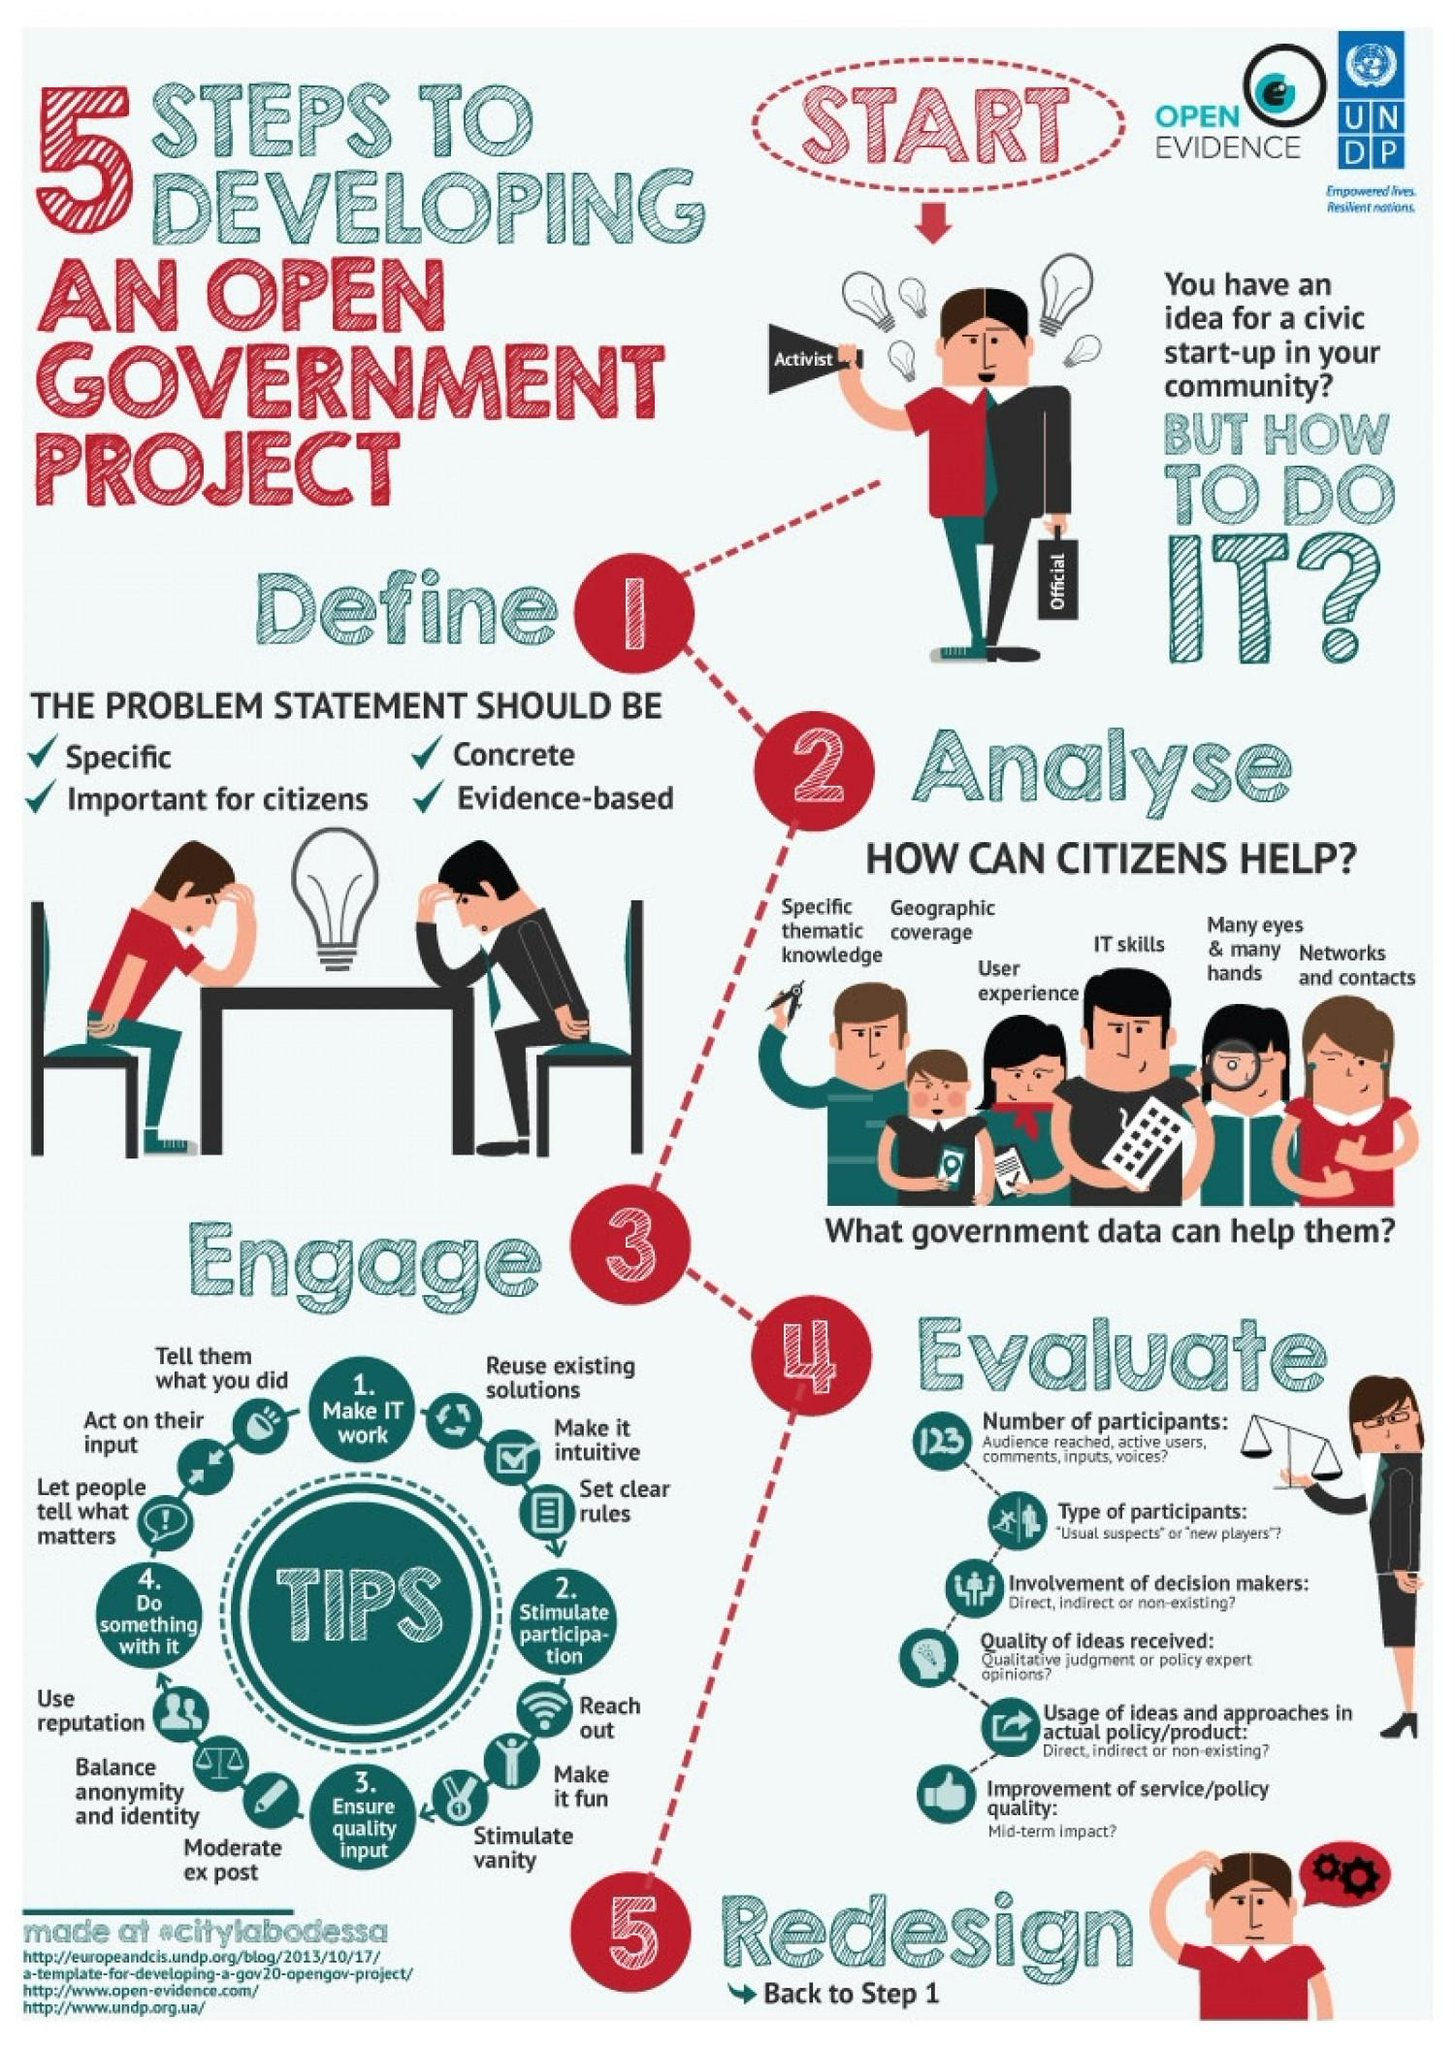 """Guess what 5 steps are needed to develop an open government. Check out @jcinews  #infographic! http://t.co/pkNJ5zEaS1""""@ekajnr@MungaiNfi"""